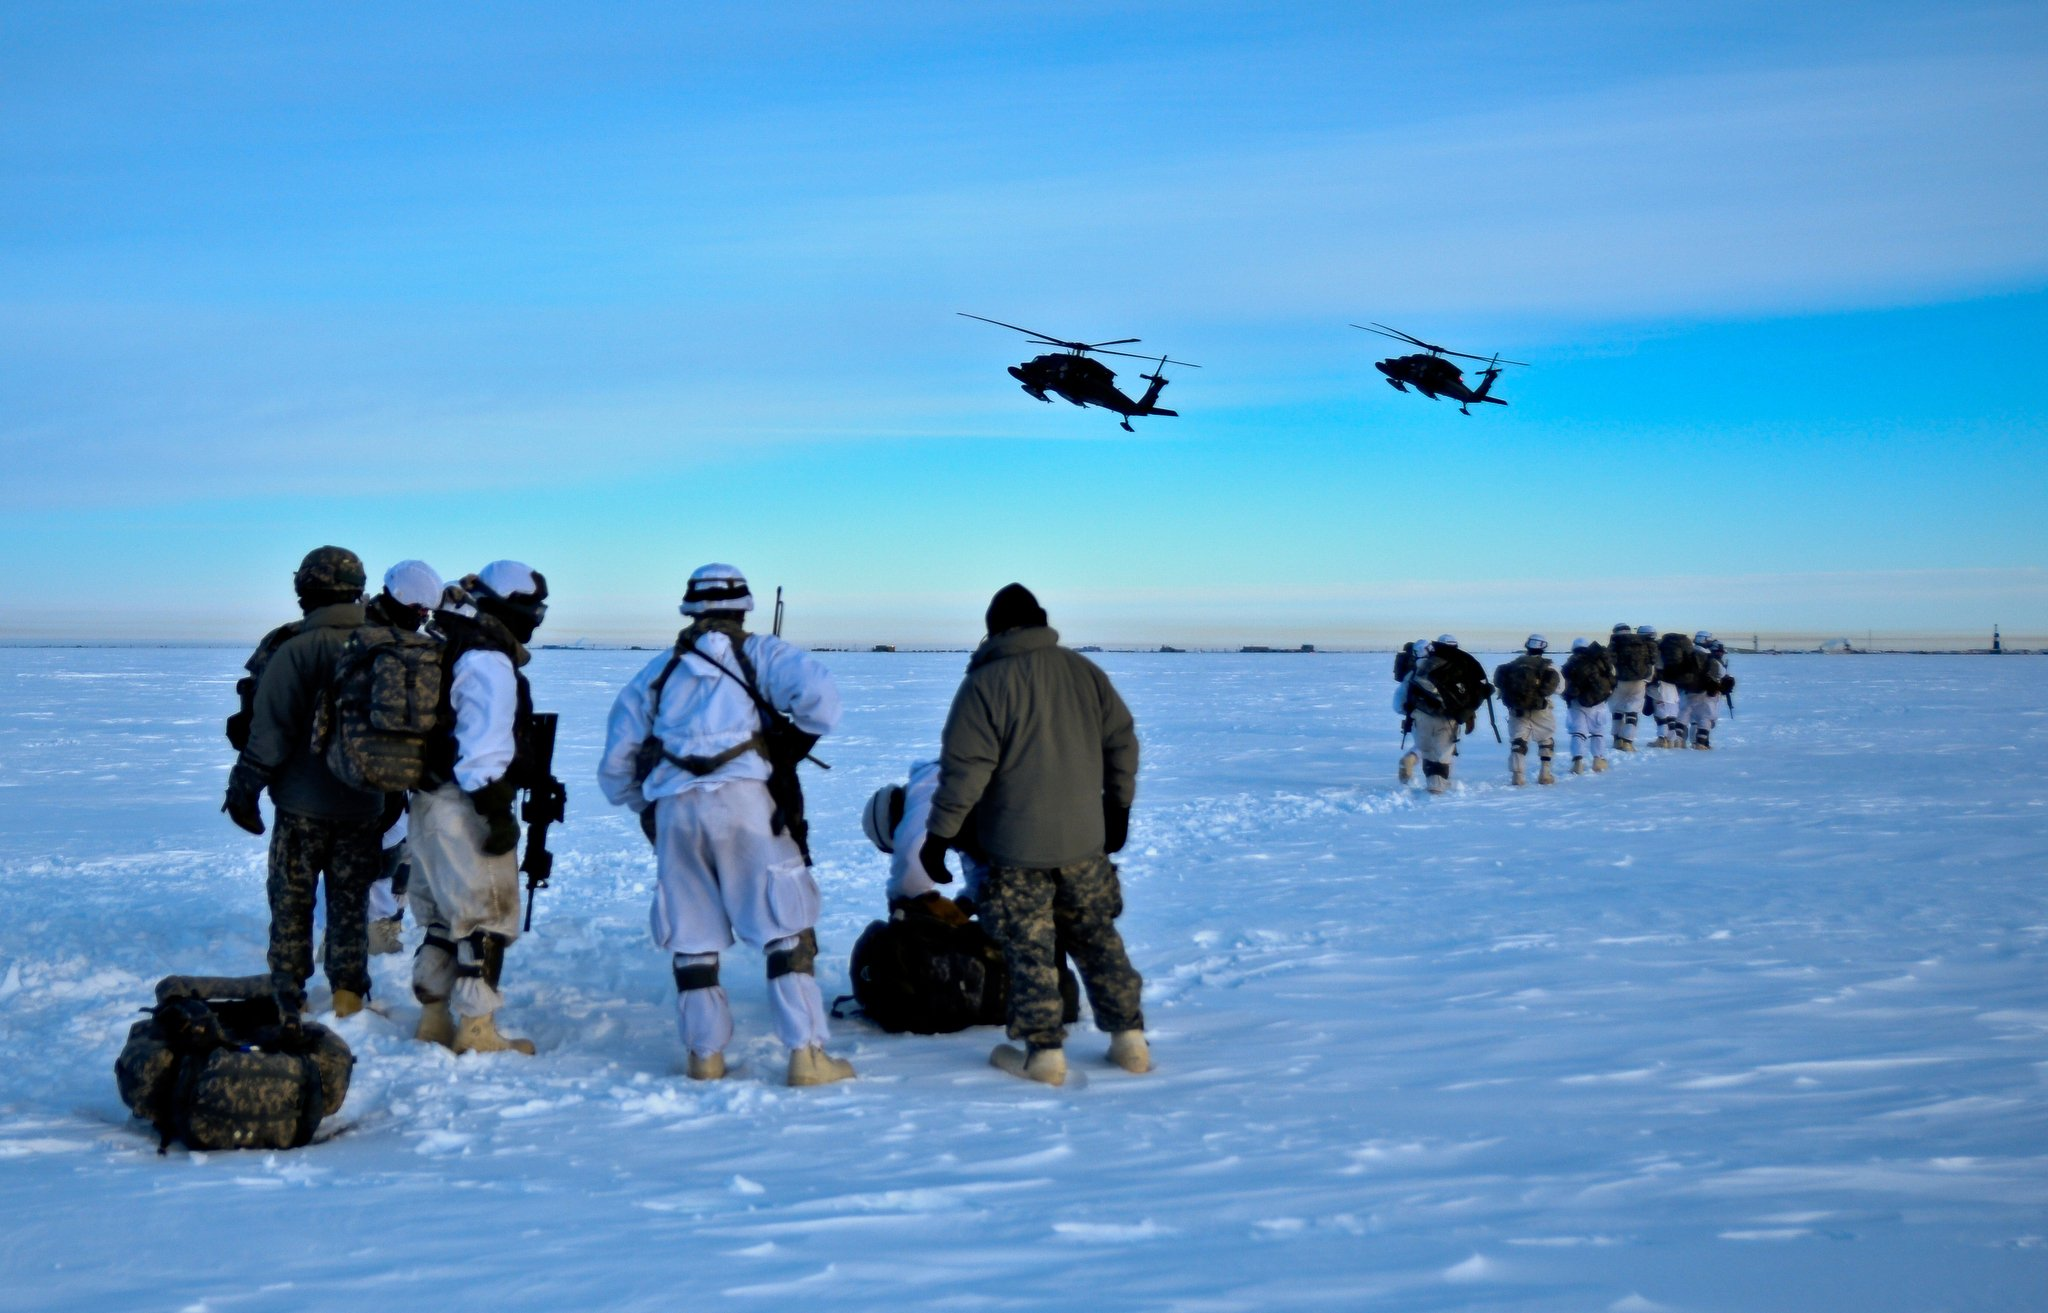 A new U.S. Defense Department Arctic Strategy sees growing uncertainty and tension in the region